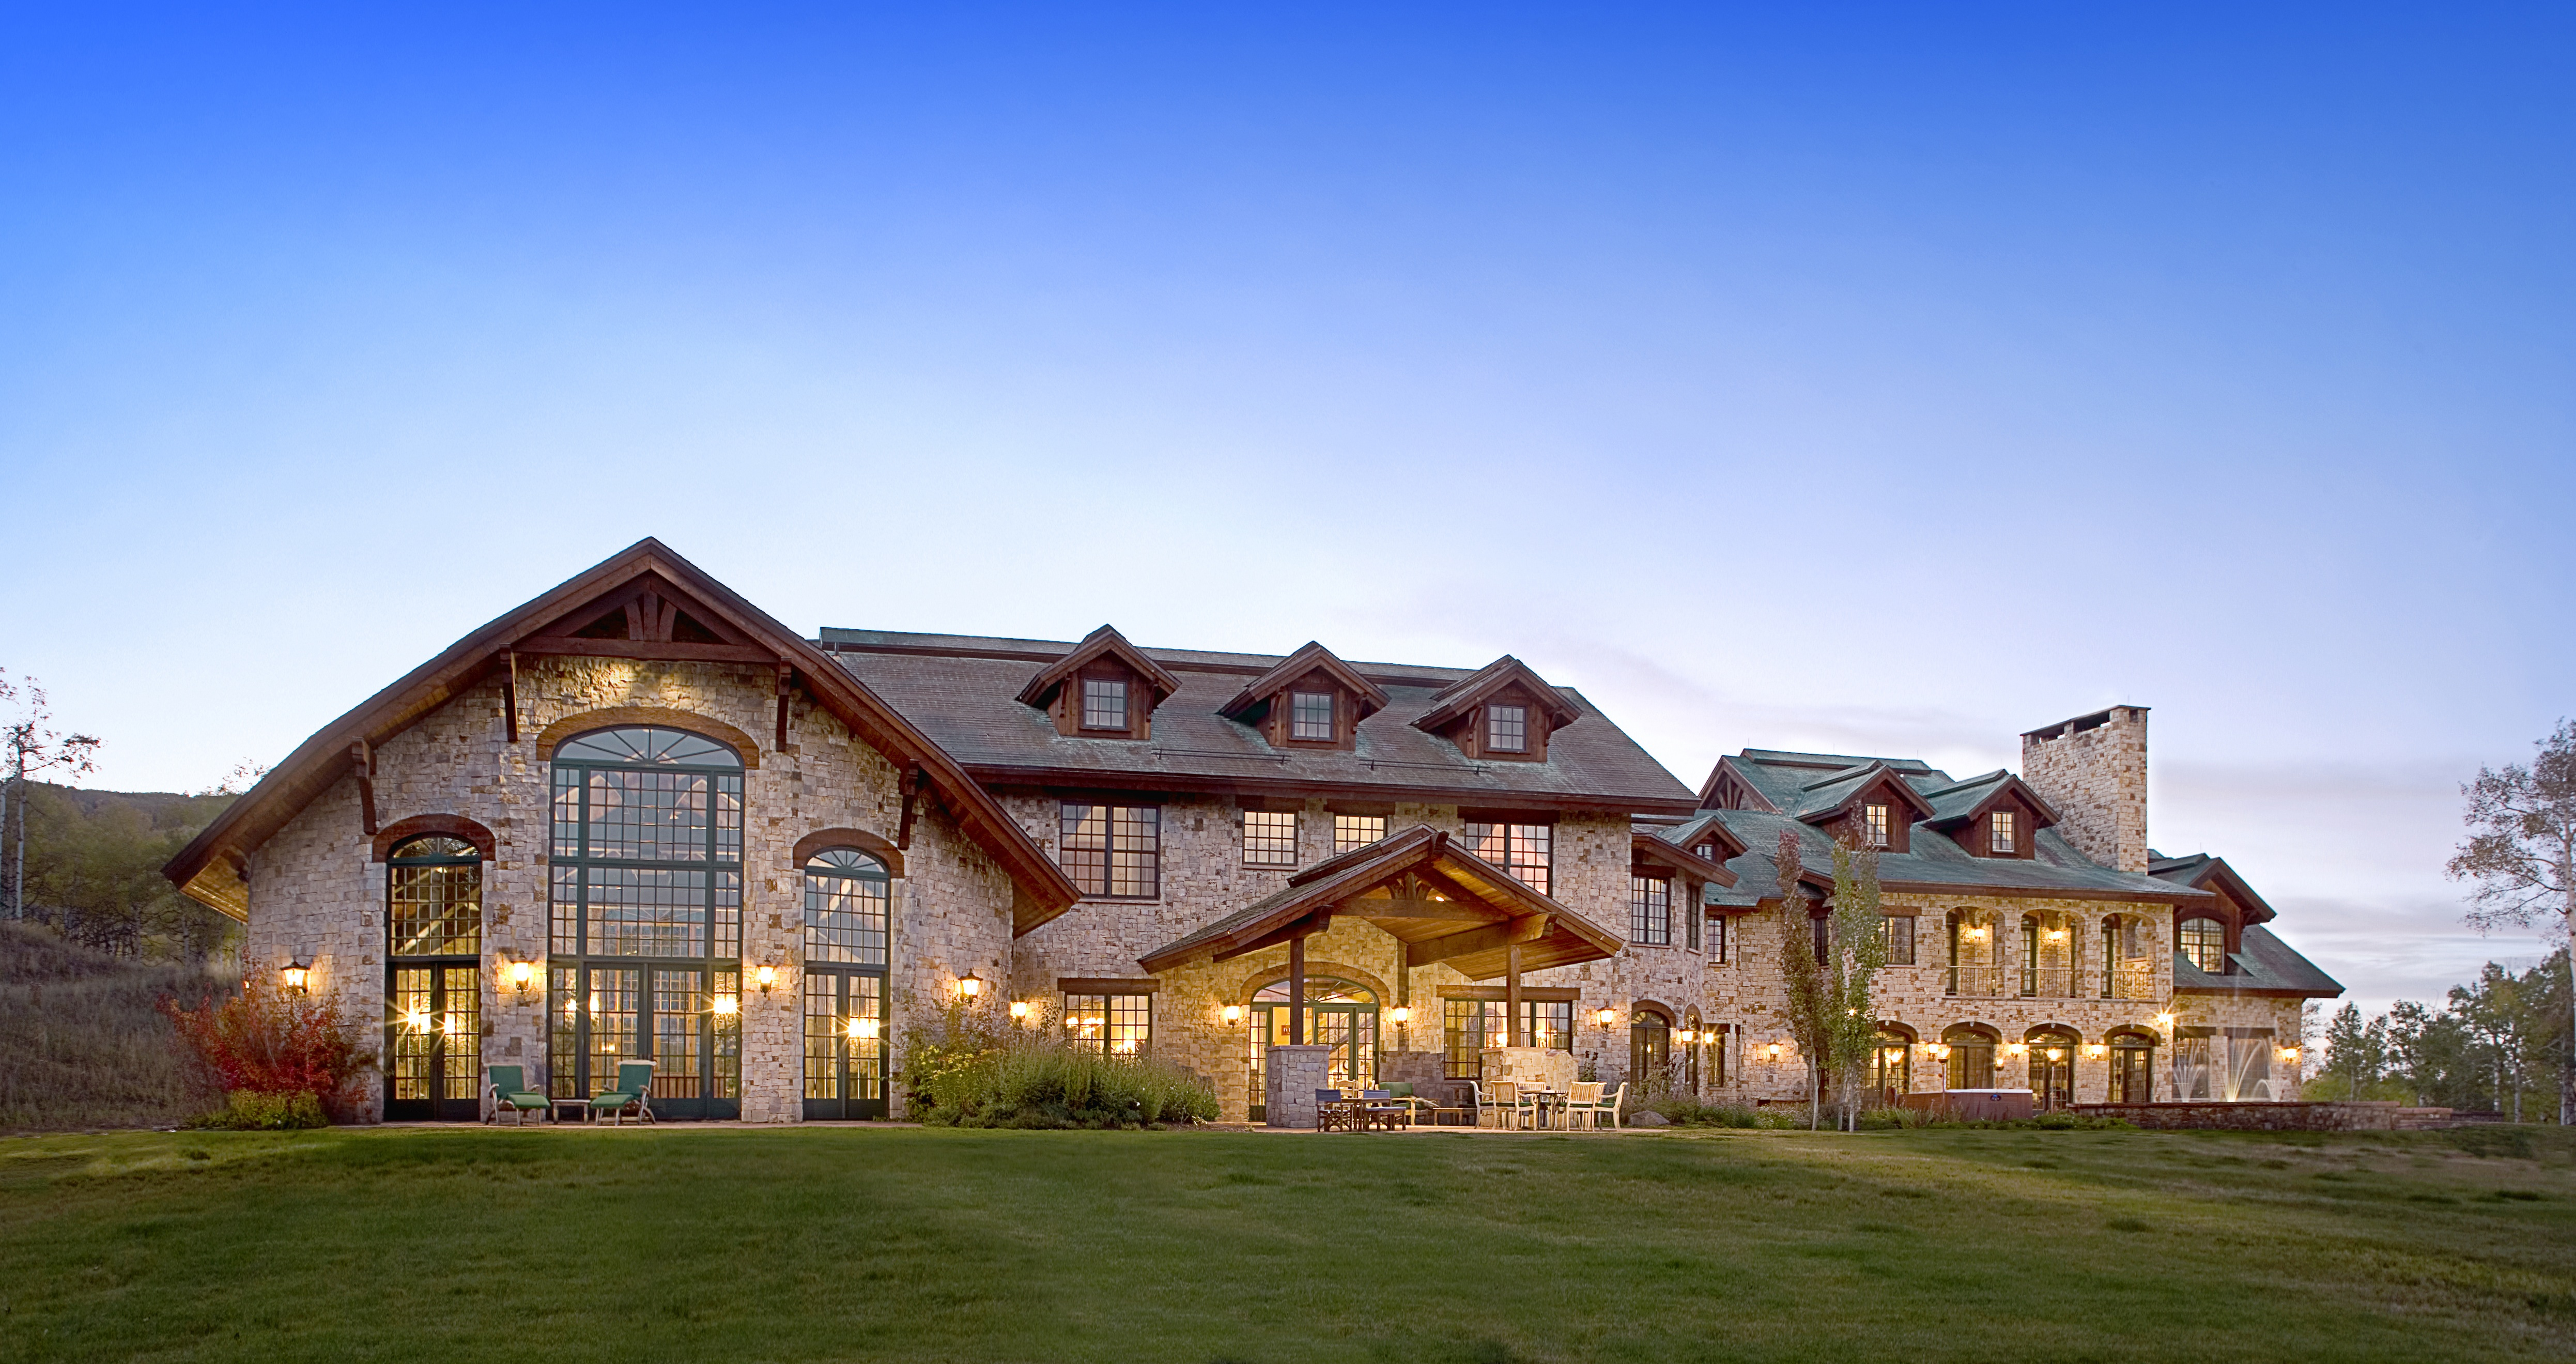 steamboat springs estate sold by grand estates auction company at absolute auction for more than